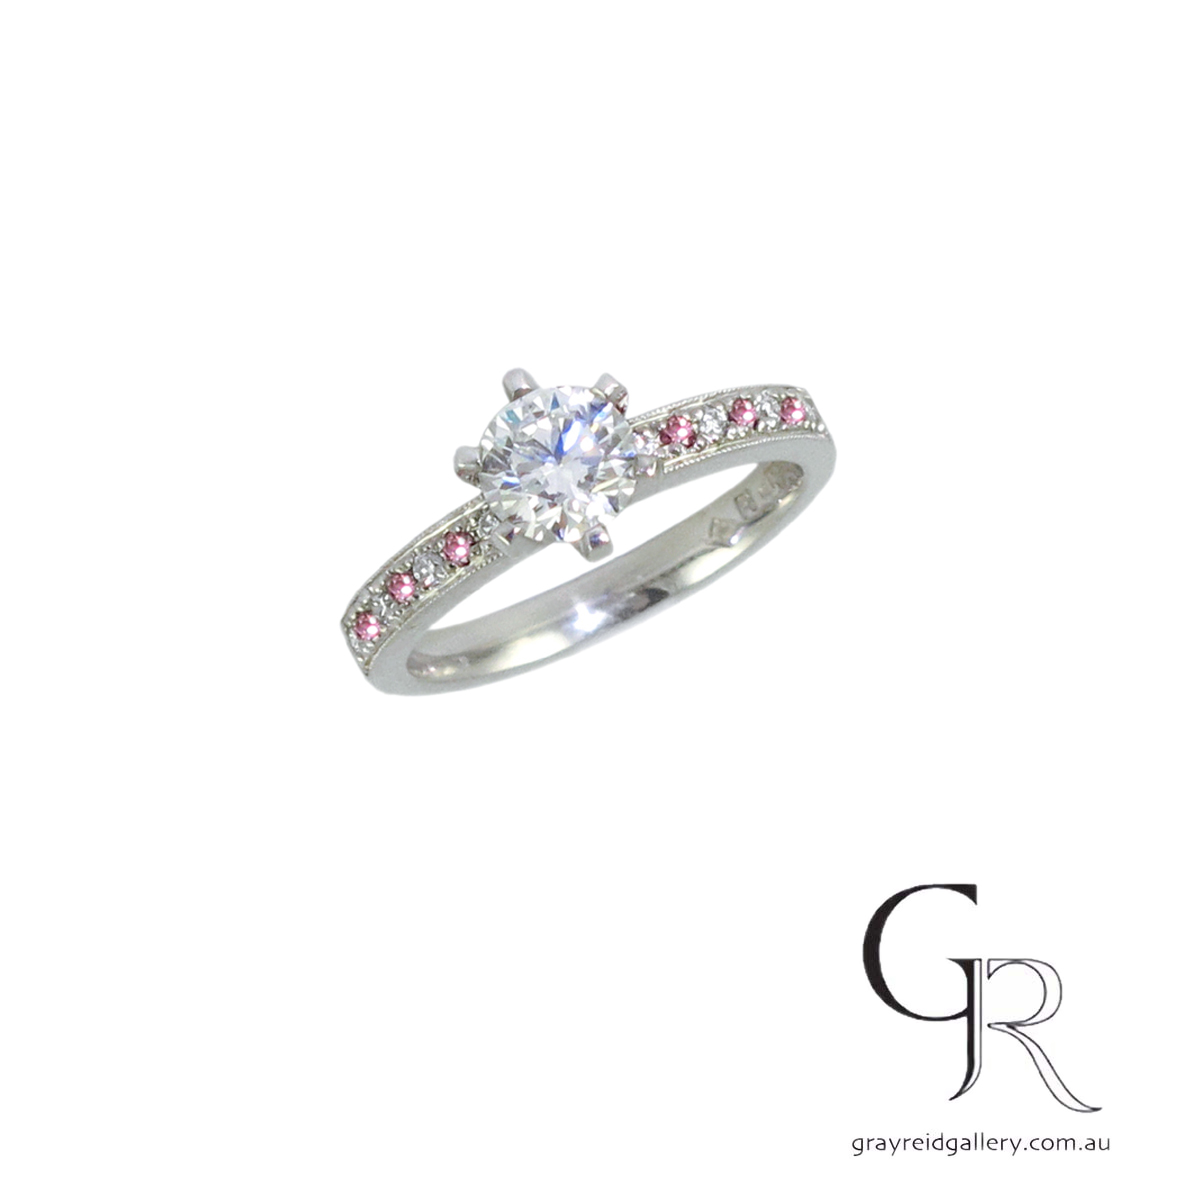 custom made engagement rings melbourne 26.JPG